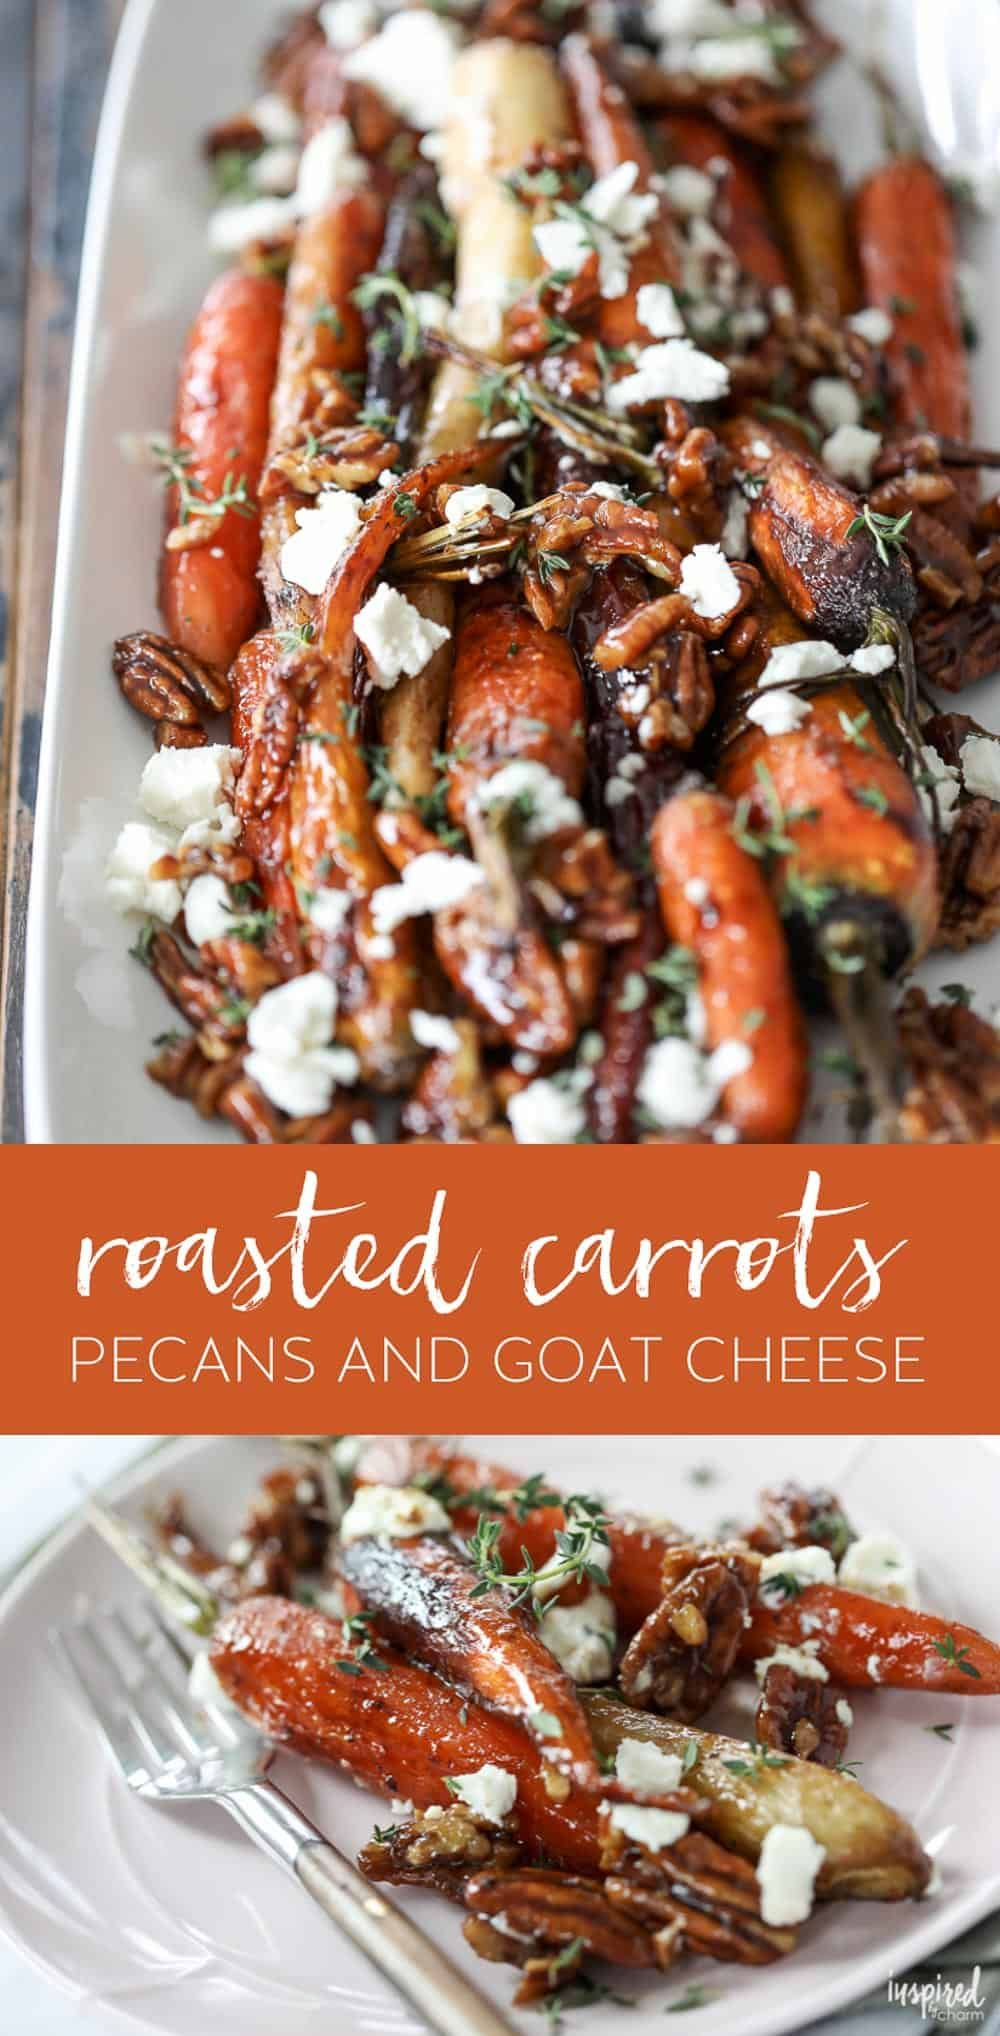 Roasted Carrots with Candied Pecans and Goat Cheese - fall Thanksgiving side dish recipes #recipe #fall #roasted #carrots #glazed #goatcheese #pecans via @inspiredbycharm #chickensidedishes